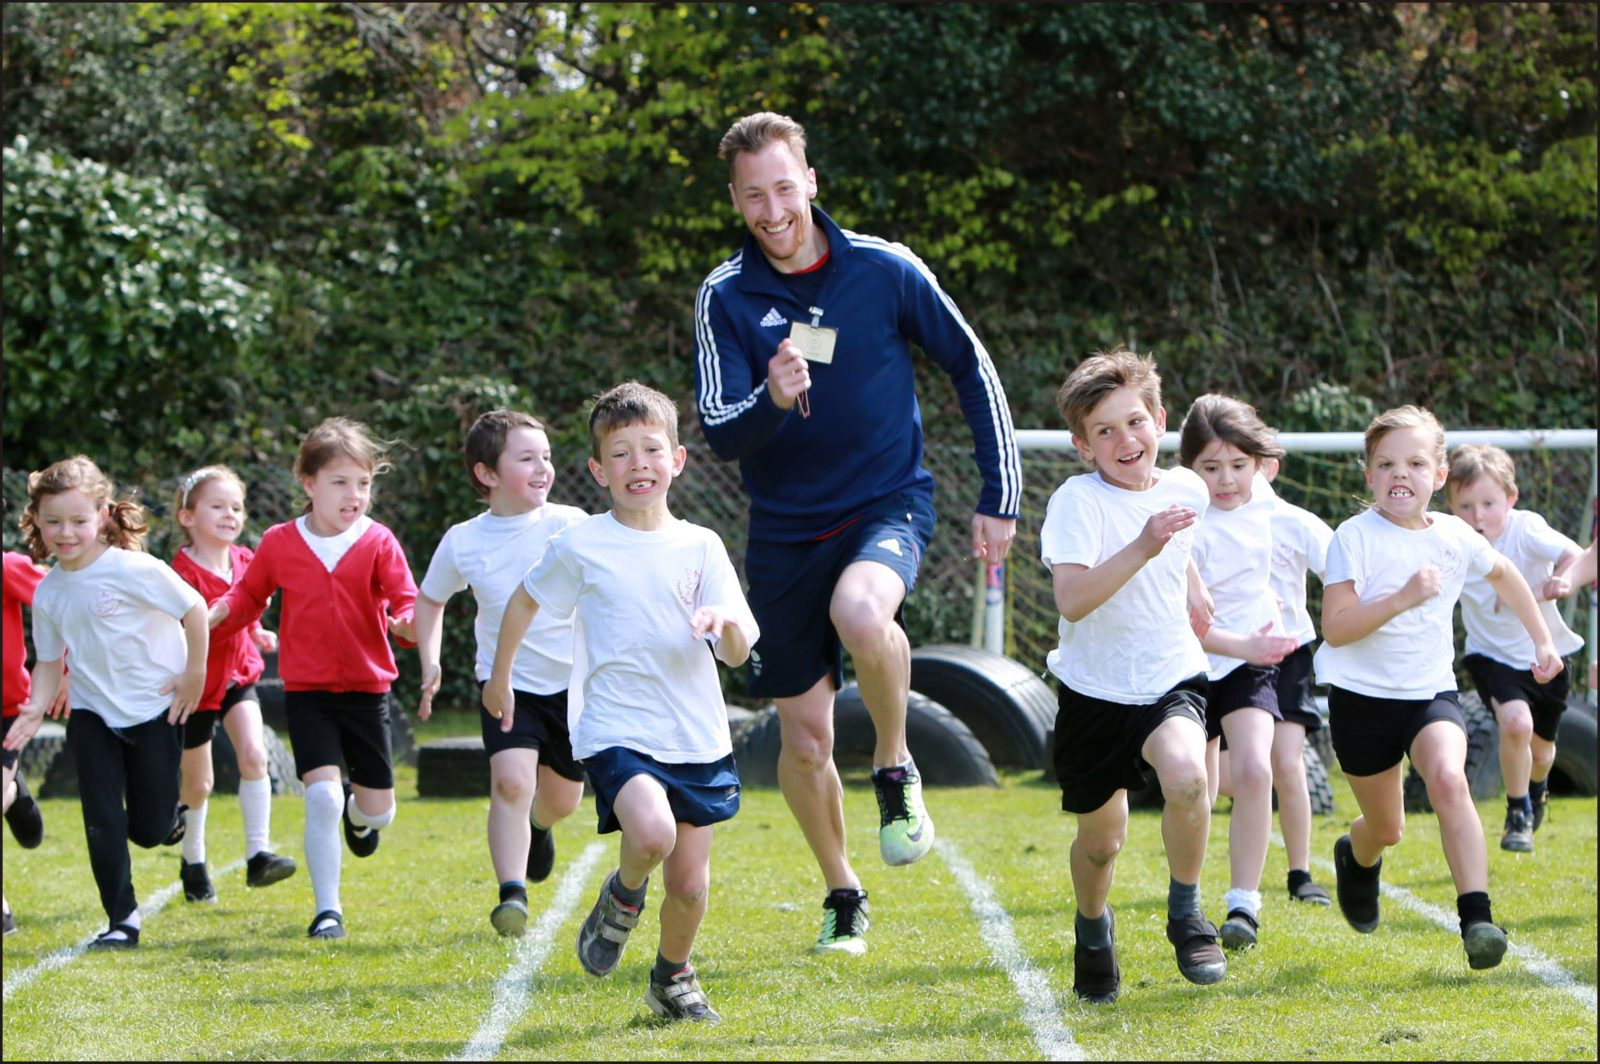 Olympic athlete Gareth Hopkins was a guest at St John's C of E First School in Wimborne where he put the pupils through their paces. Gareth runs with year 2 pupils.